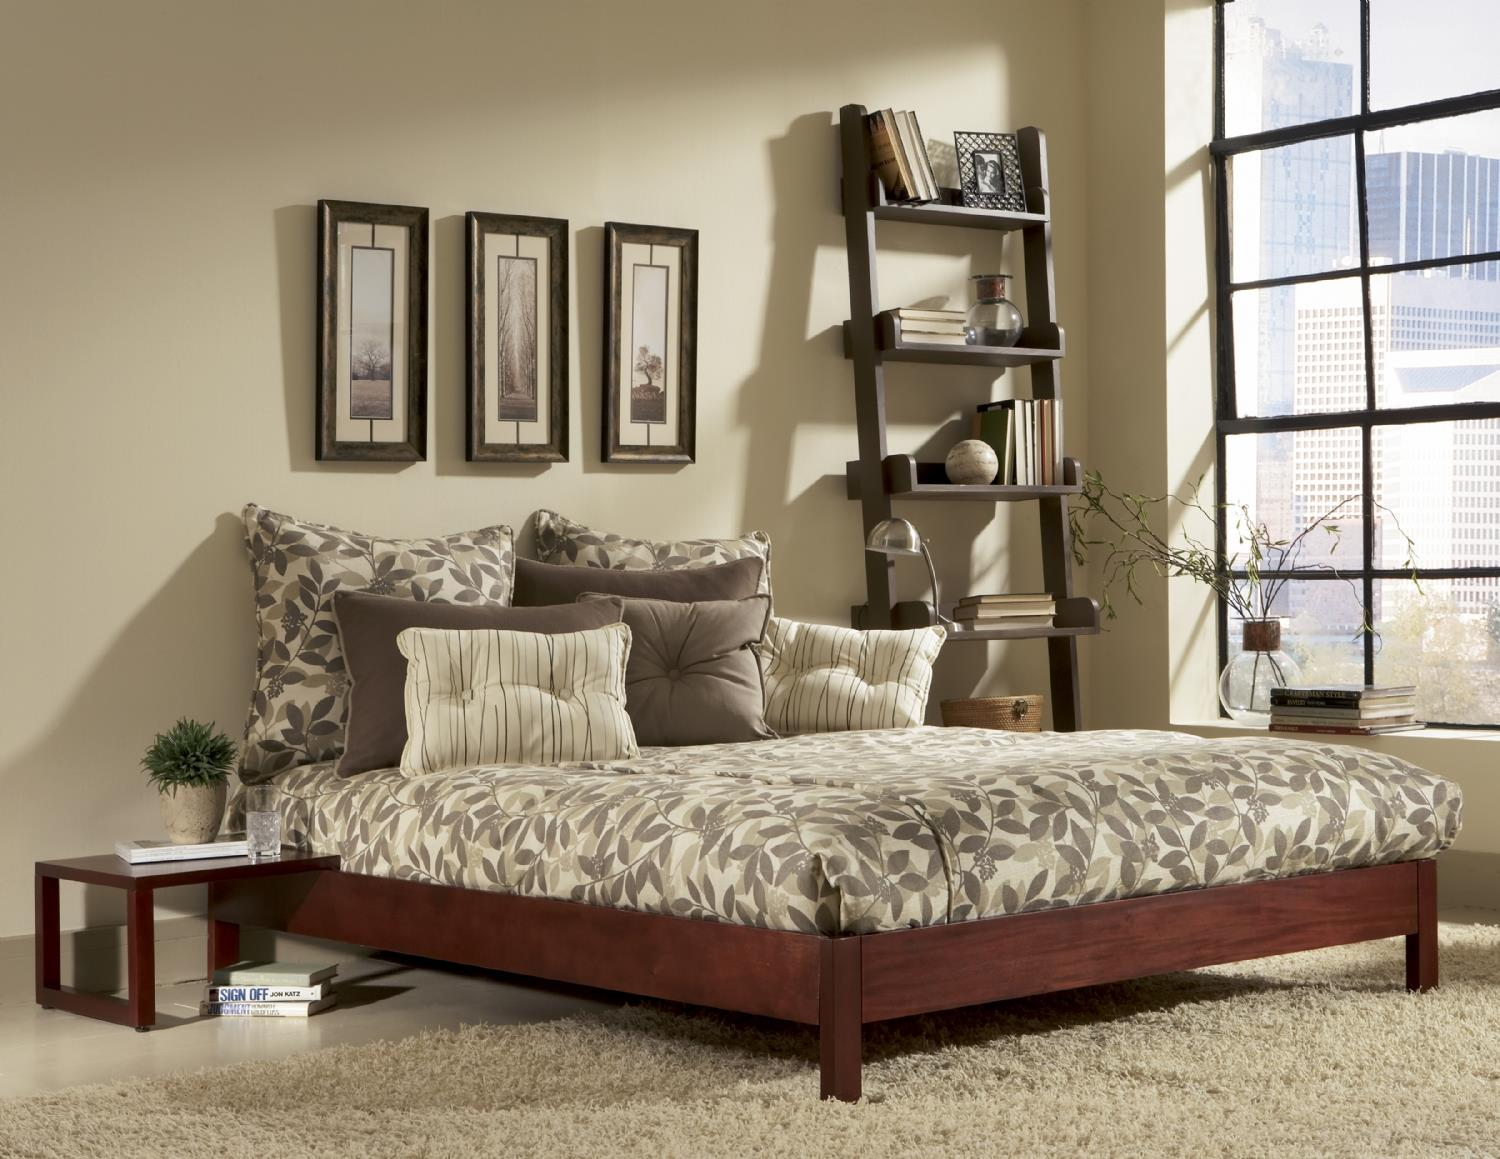 Fashion Bed Group Murray King Bed - Item Number: D58111217